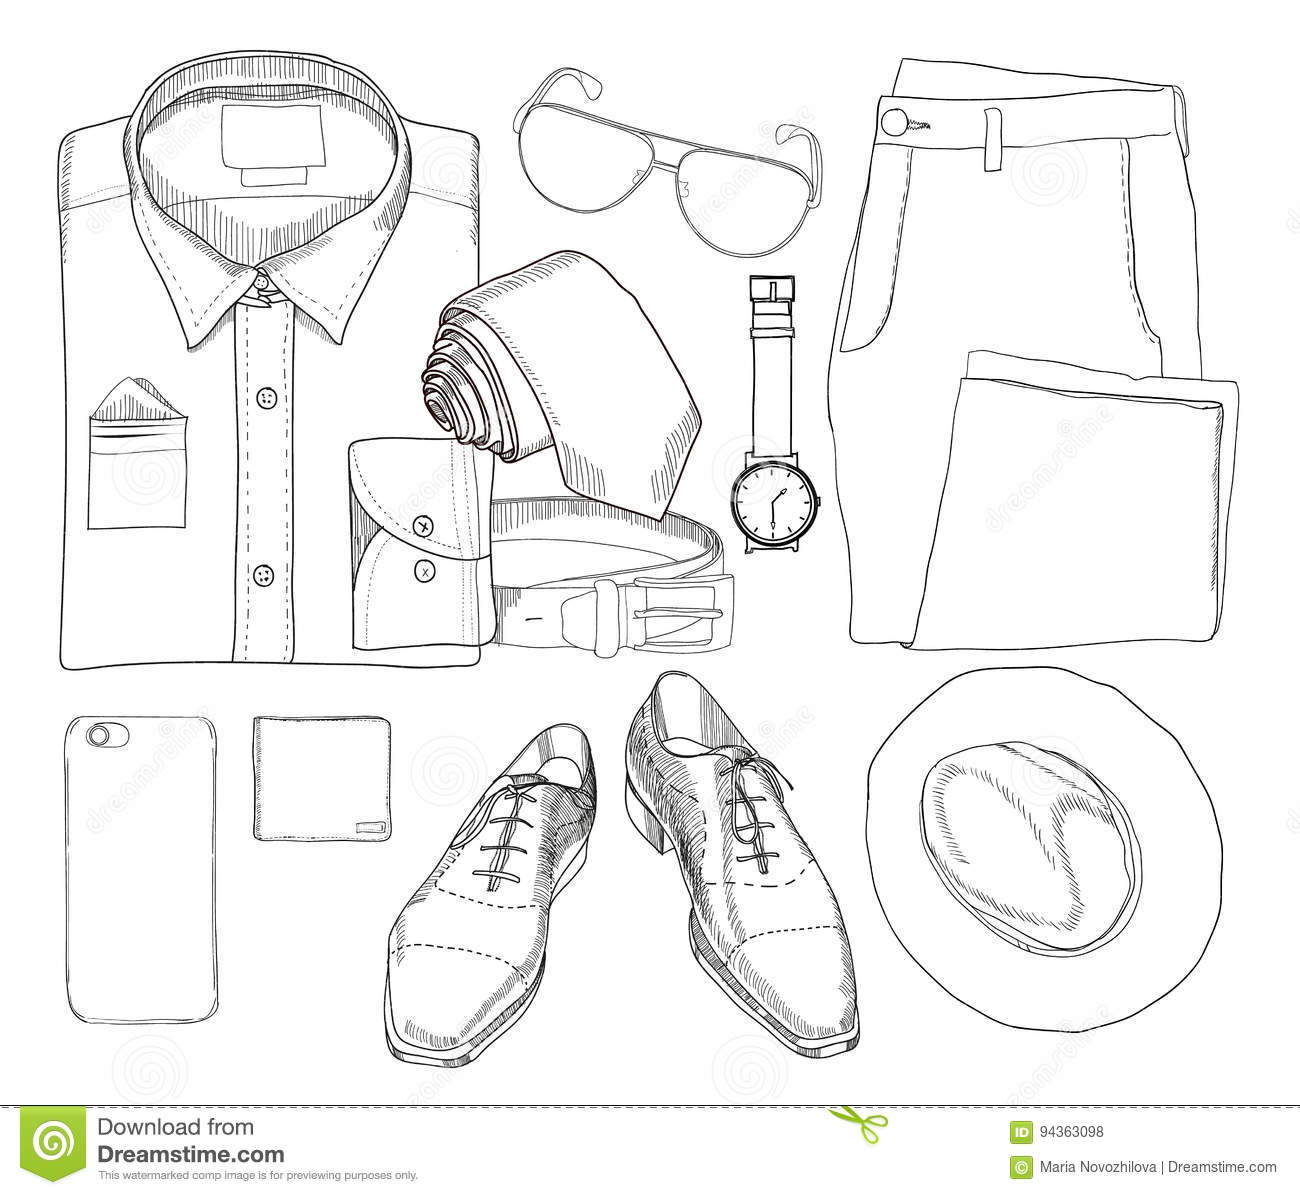 Shoe Tying Template Diagram How To Of Tie Shoes Illustration Hand Drawn And Doodle Top View Flat Lay 1300x1195